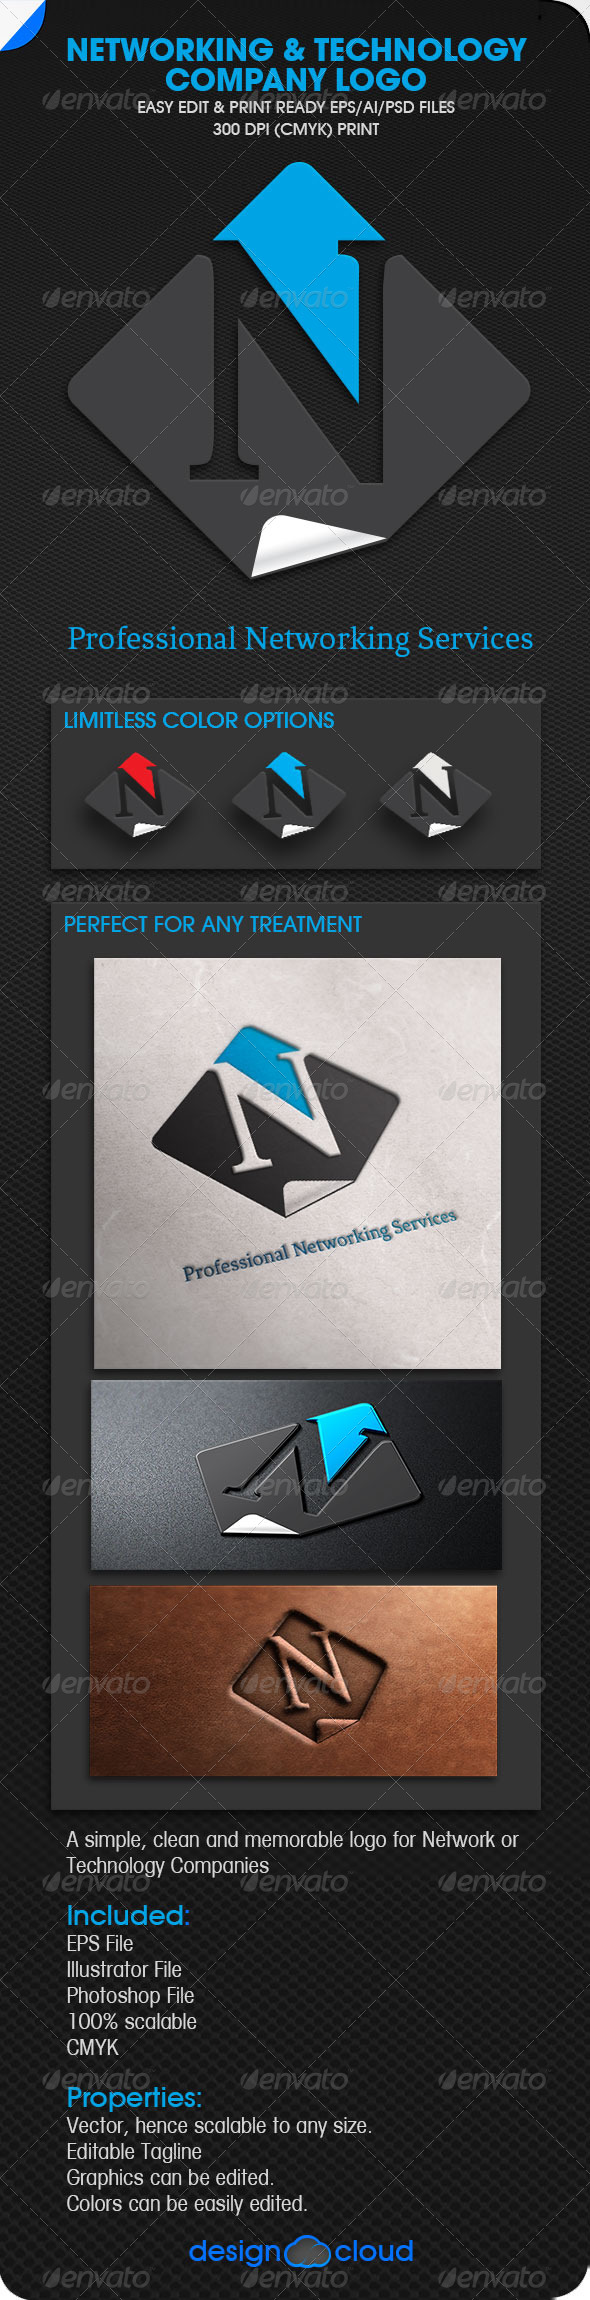 GraphicRiver Networking and Technology Logo 5905222